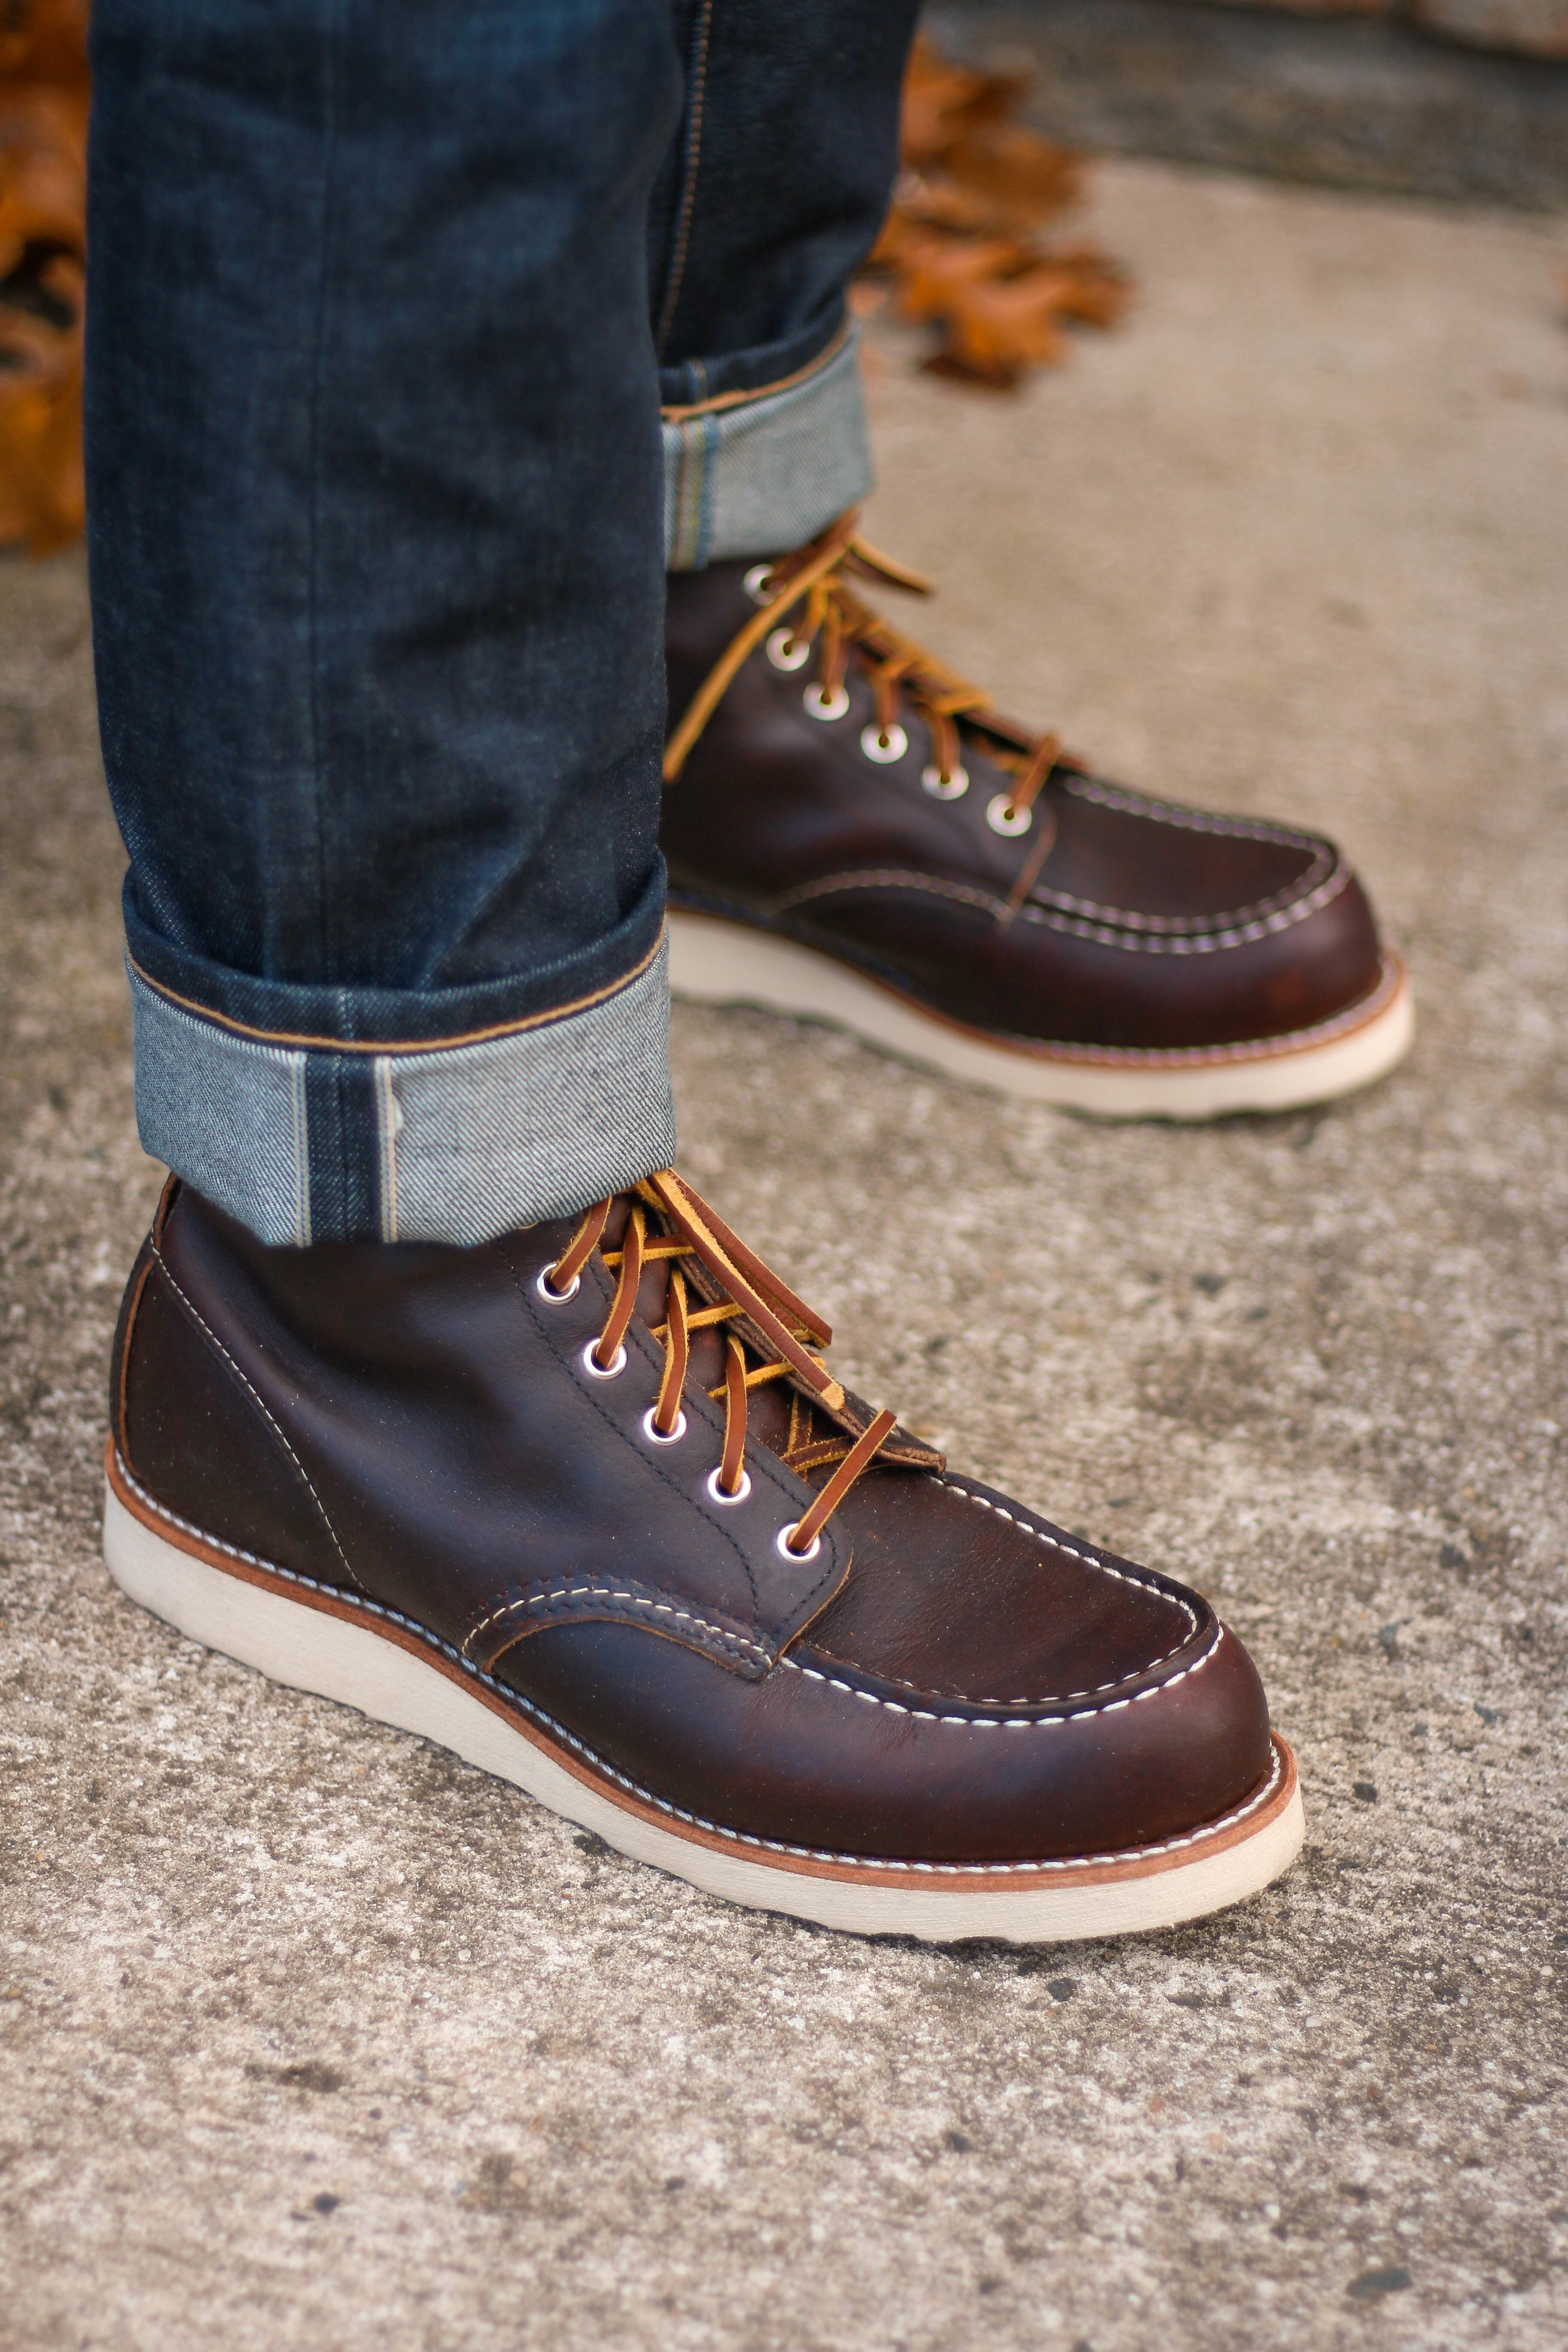 The understated style of the Red Wing Moc means it appeals to more style minded guys. Hence, you can find them at Nordstrom, etc.